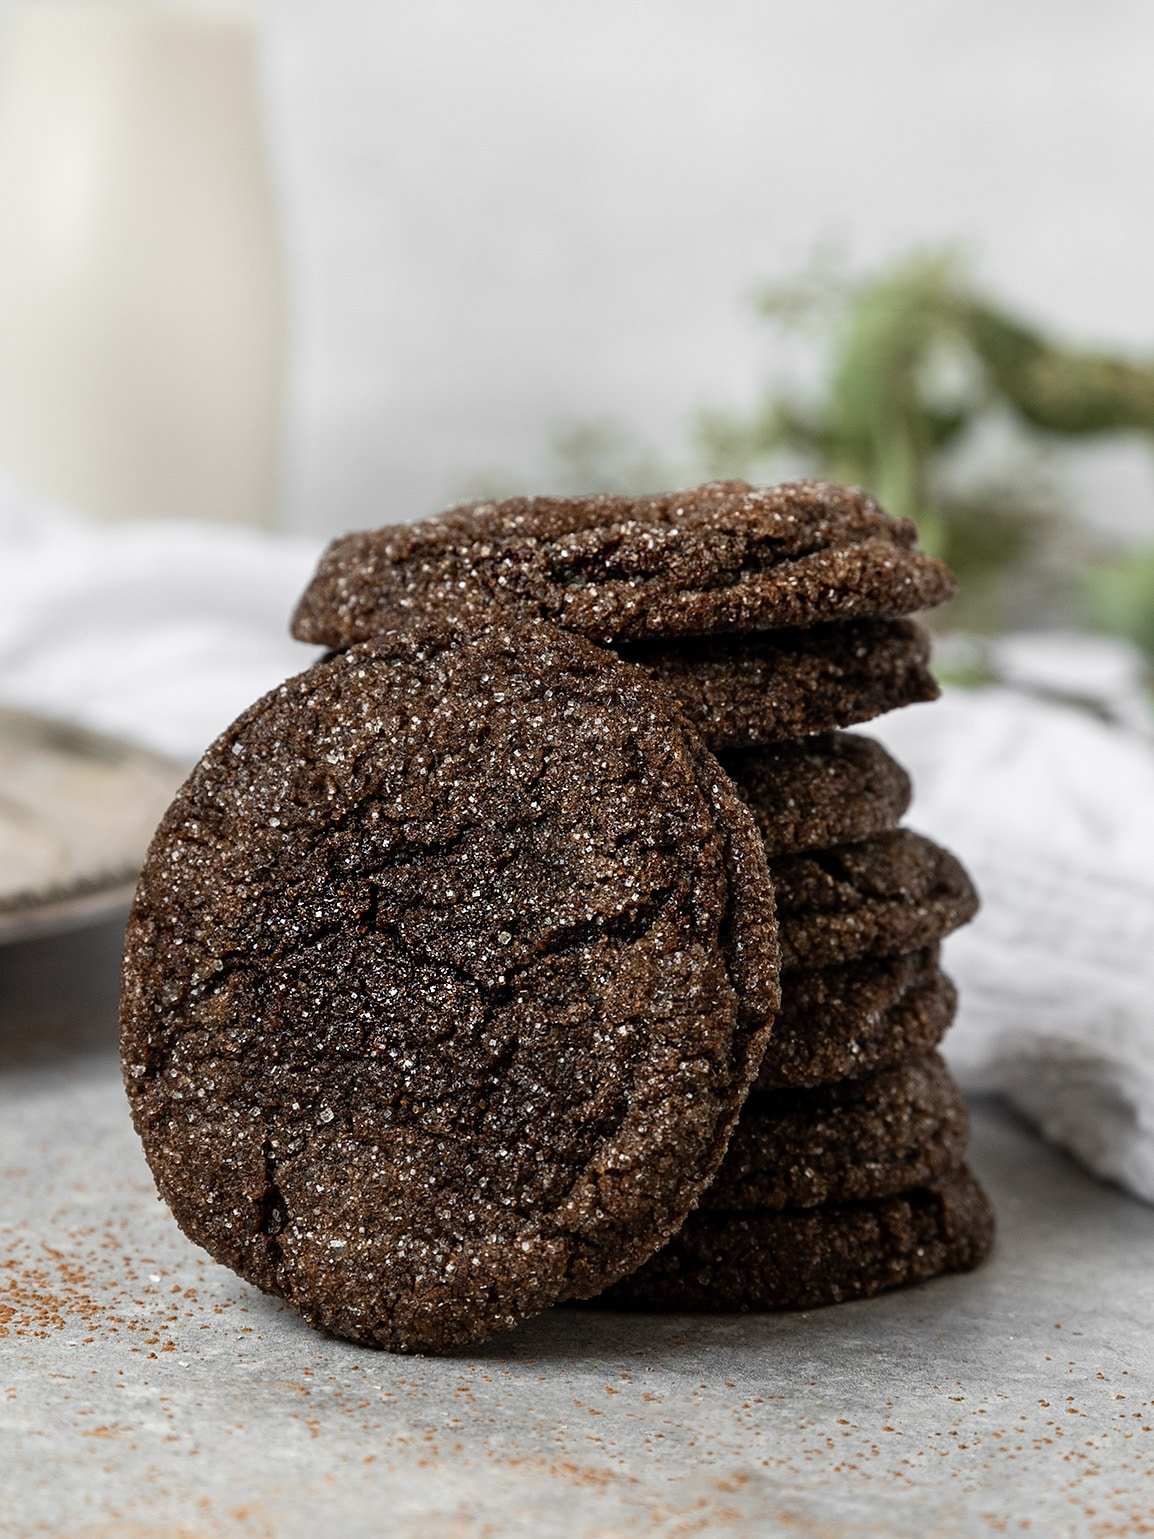 chocolate sugar cookie resting against a stack of chocolate cookies